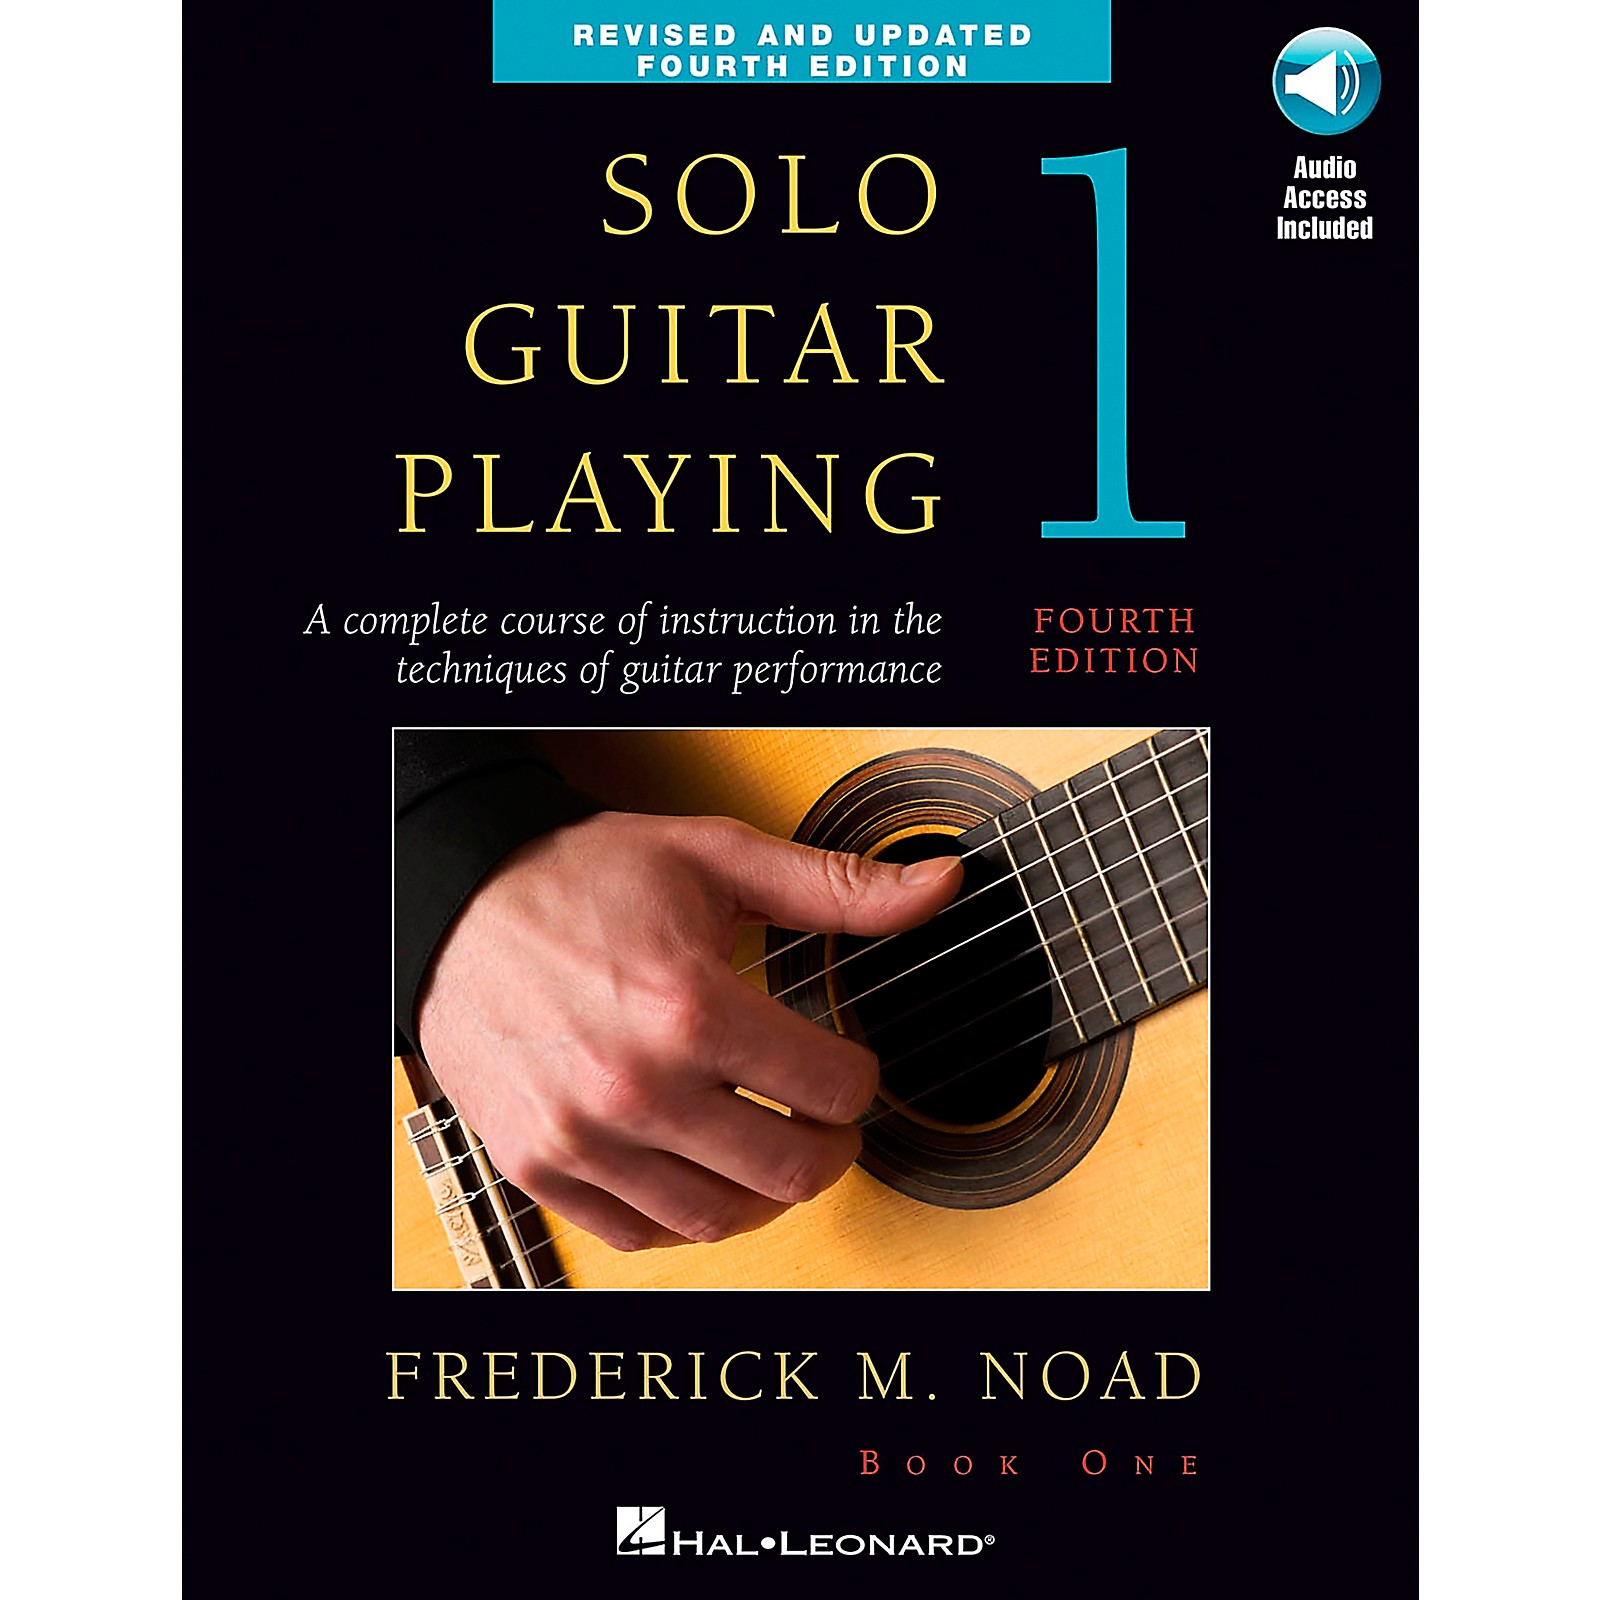 Music Sales Solo Guitar Playing Book 1 - 4th Edition Book/CD By Noad